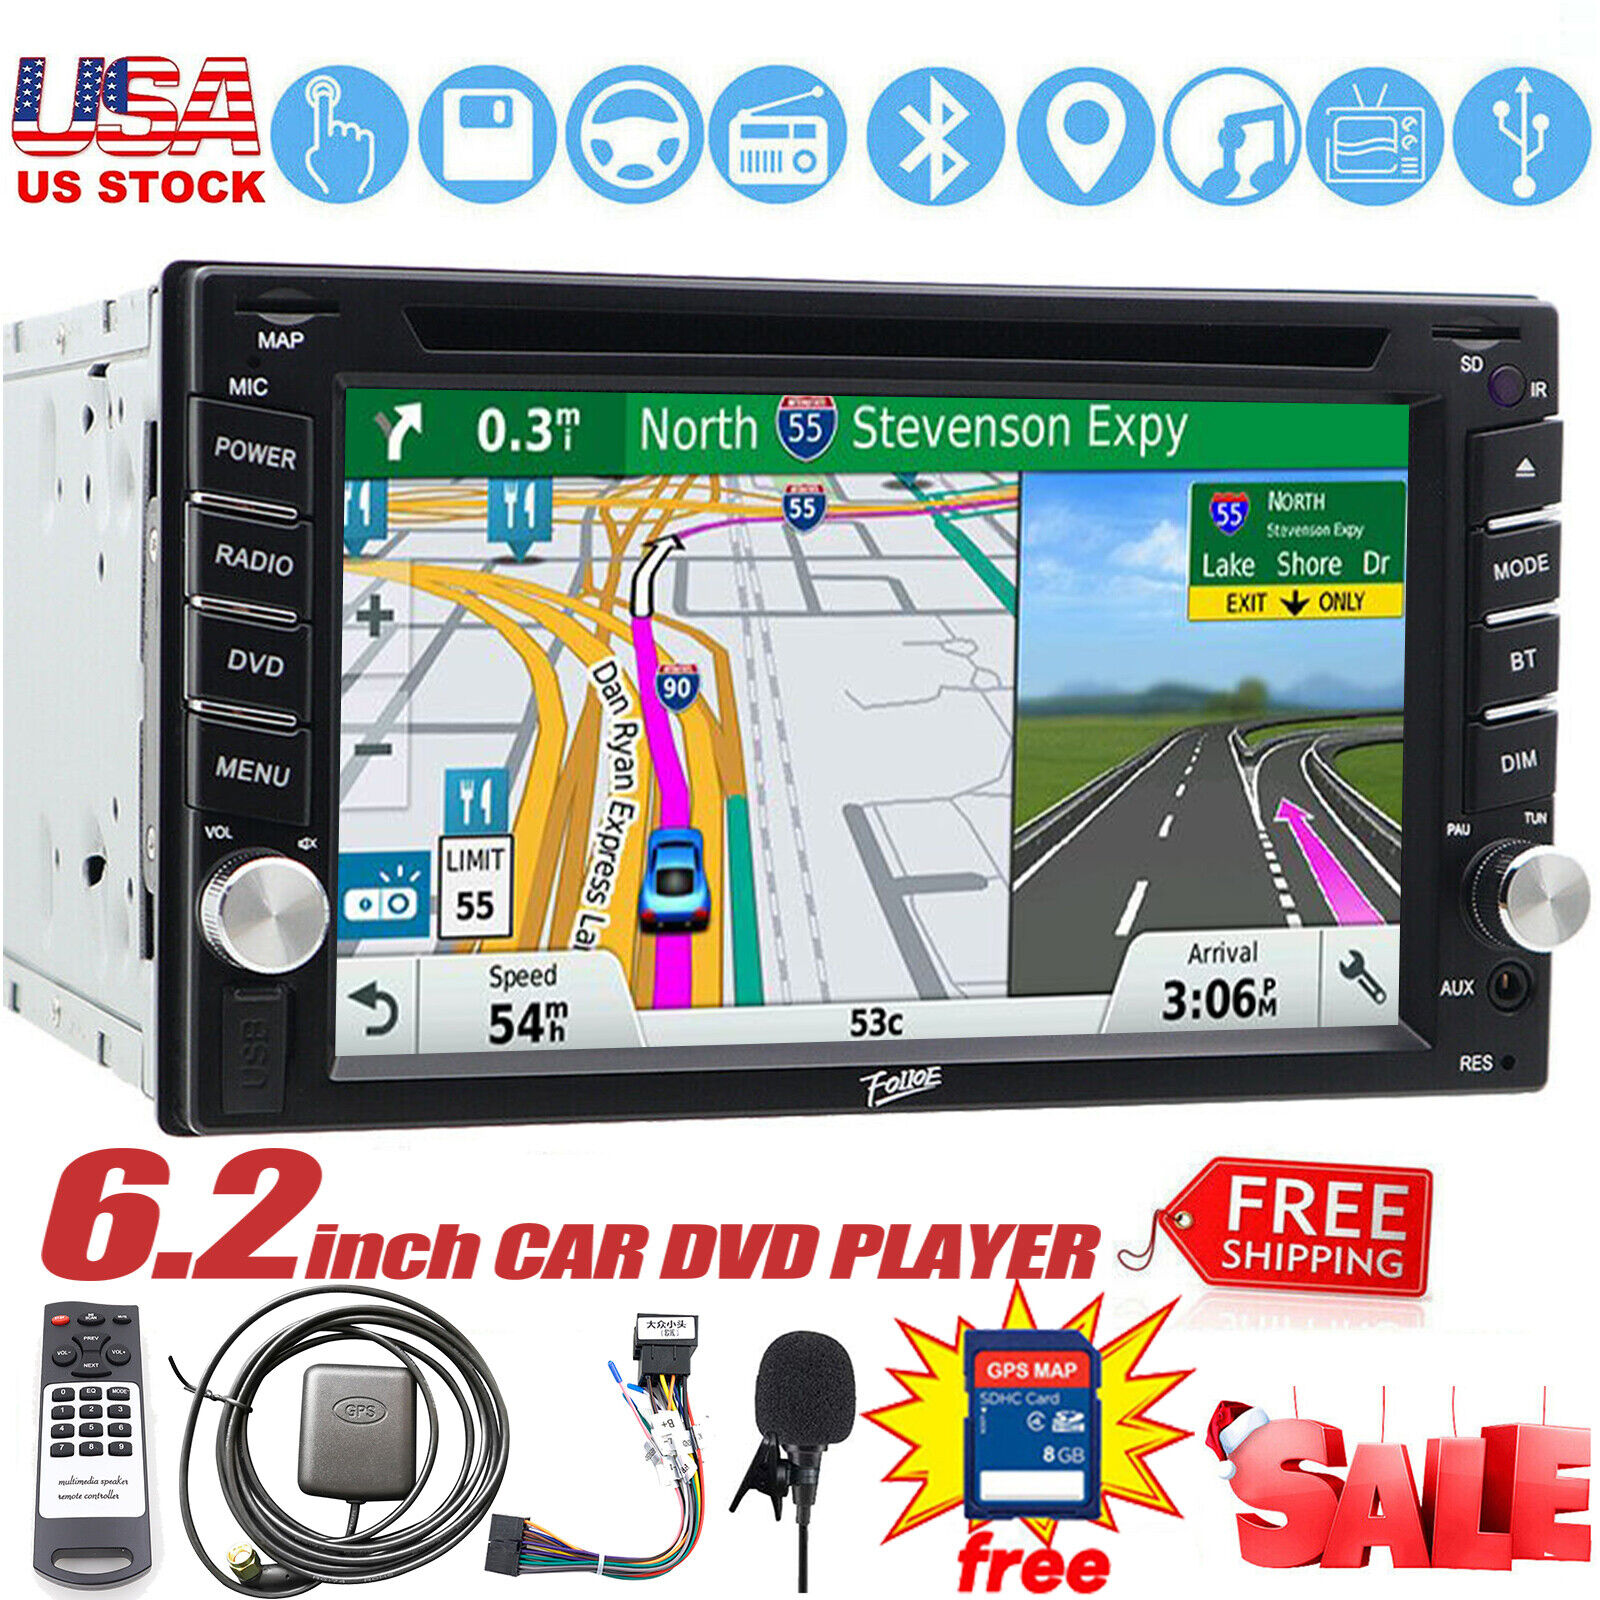 Black XTRONS 7 Inch Android 10.0 Car Stereo Radio Player GPS Navigation Built-in DSP CarAutoPlay Supports Full RCA BT5.0 1080P DVR DAB OBD TPMS for Ford Focus